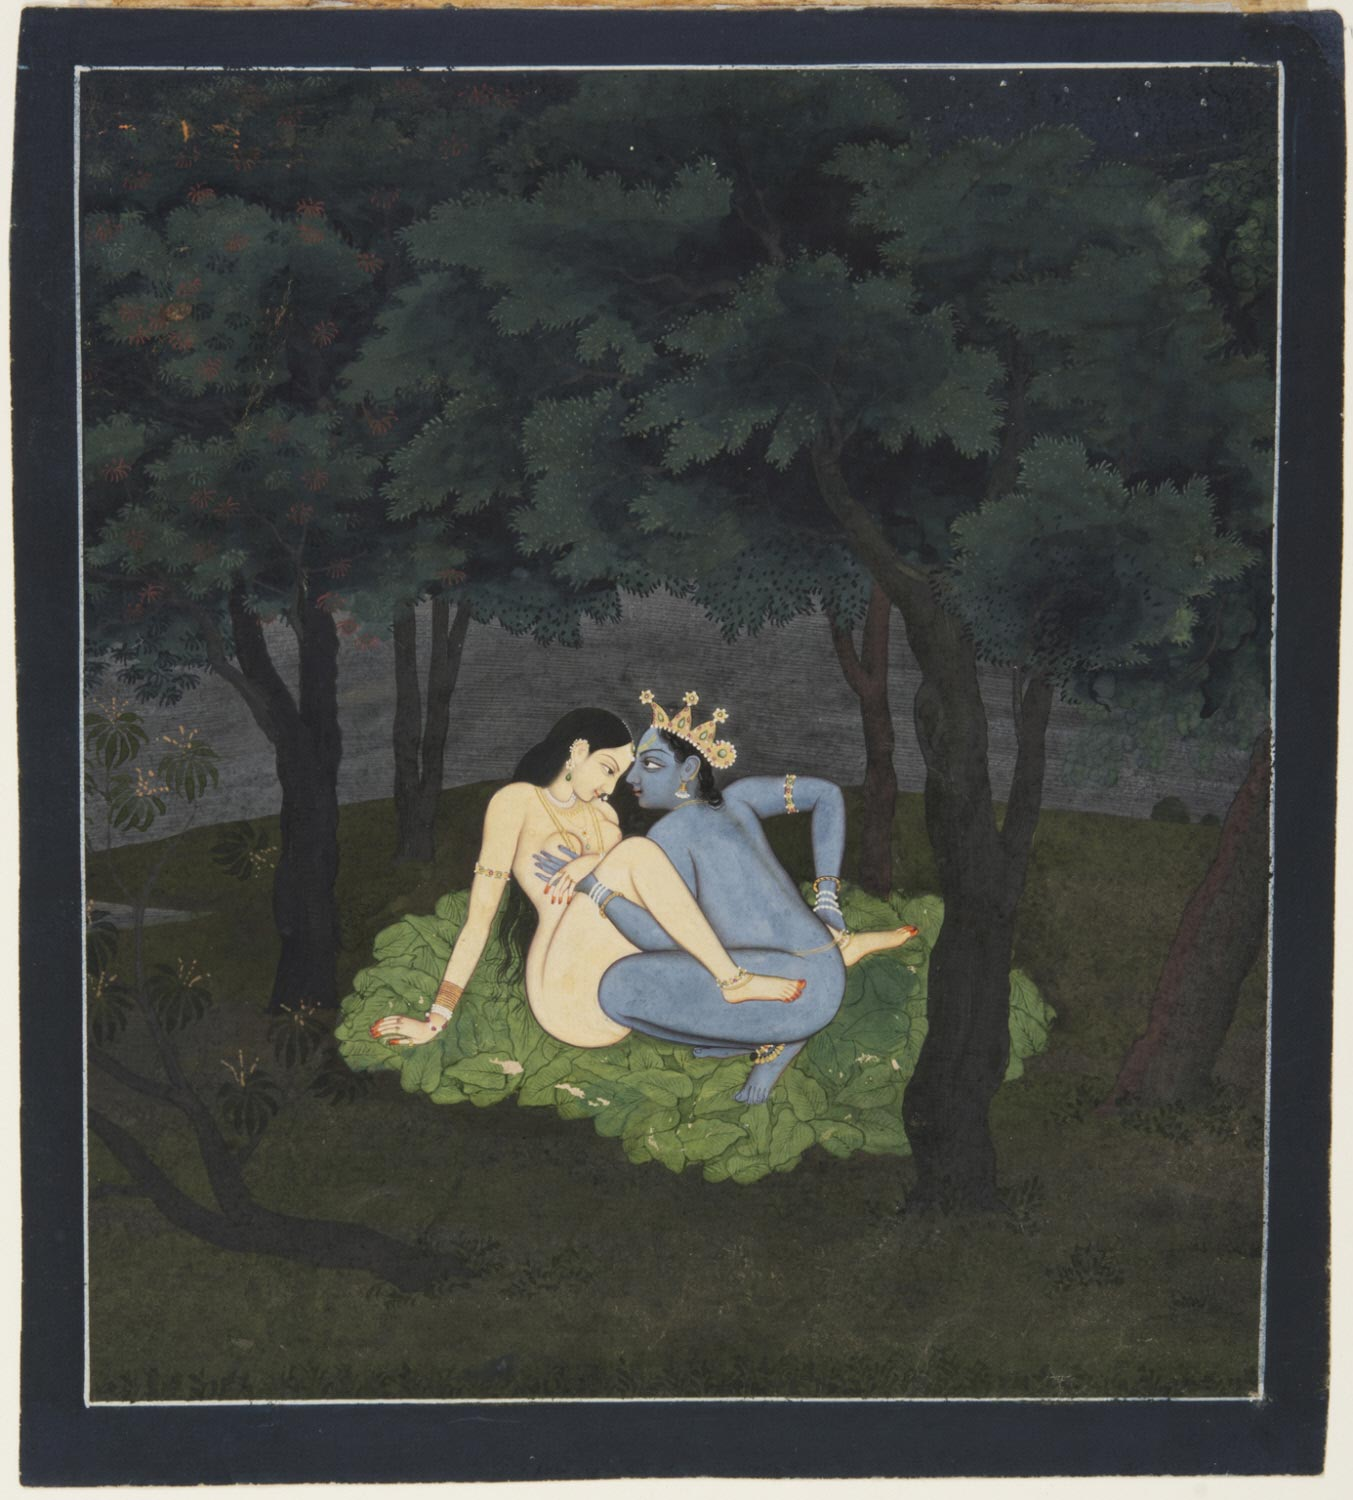 Radha and Krishna in their Forest Love Nest - Kangra or Guler Painting, Late 18th Century